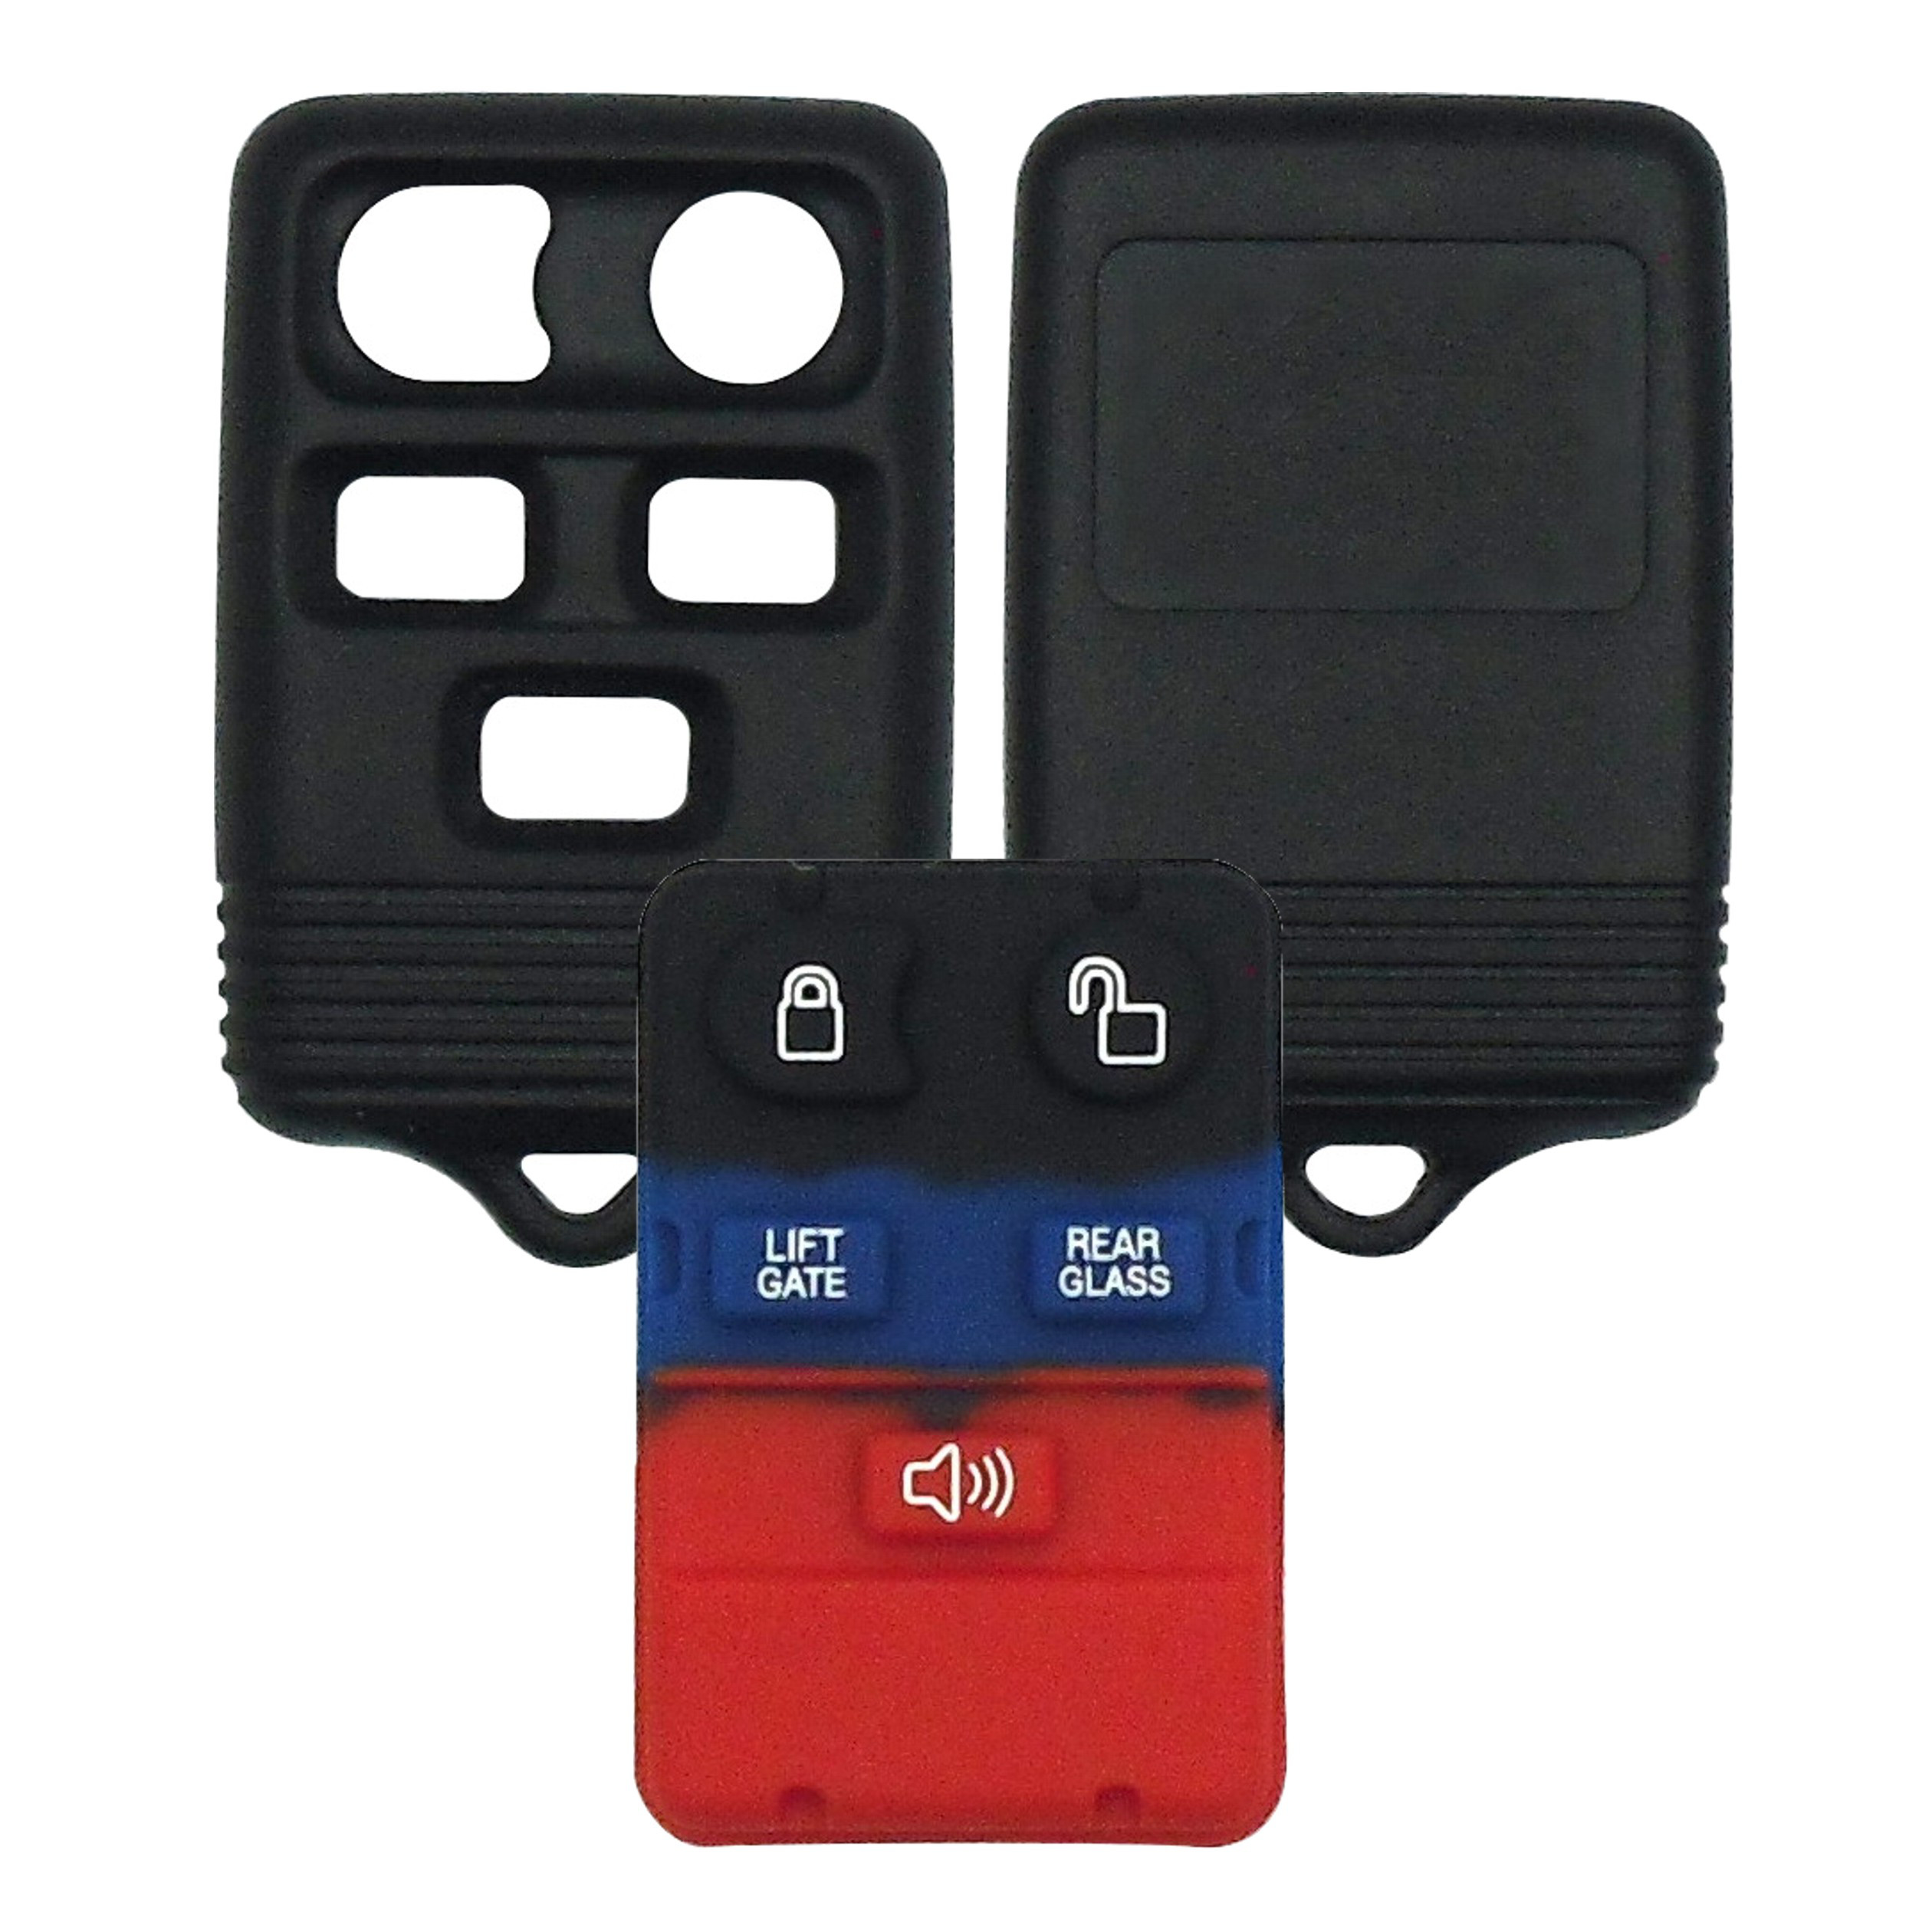 Ford - 5 Button Black Remote Replacement Shell